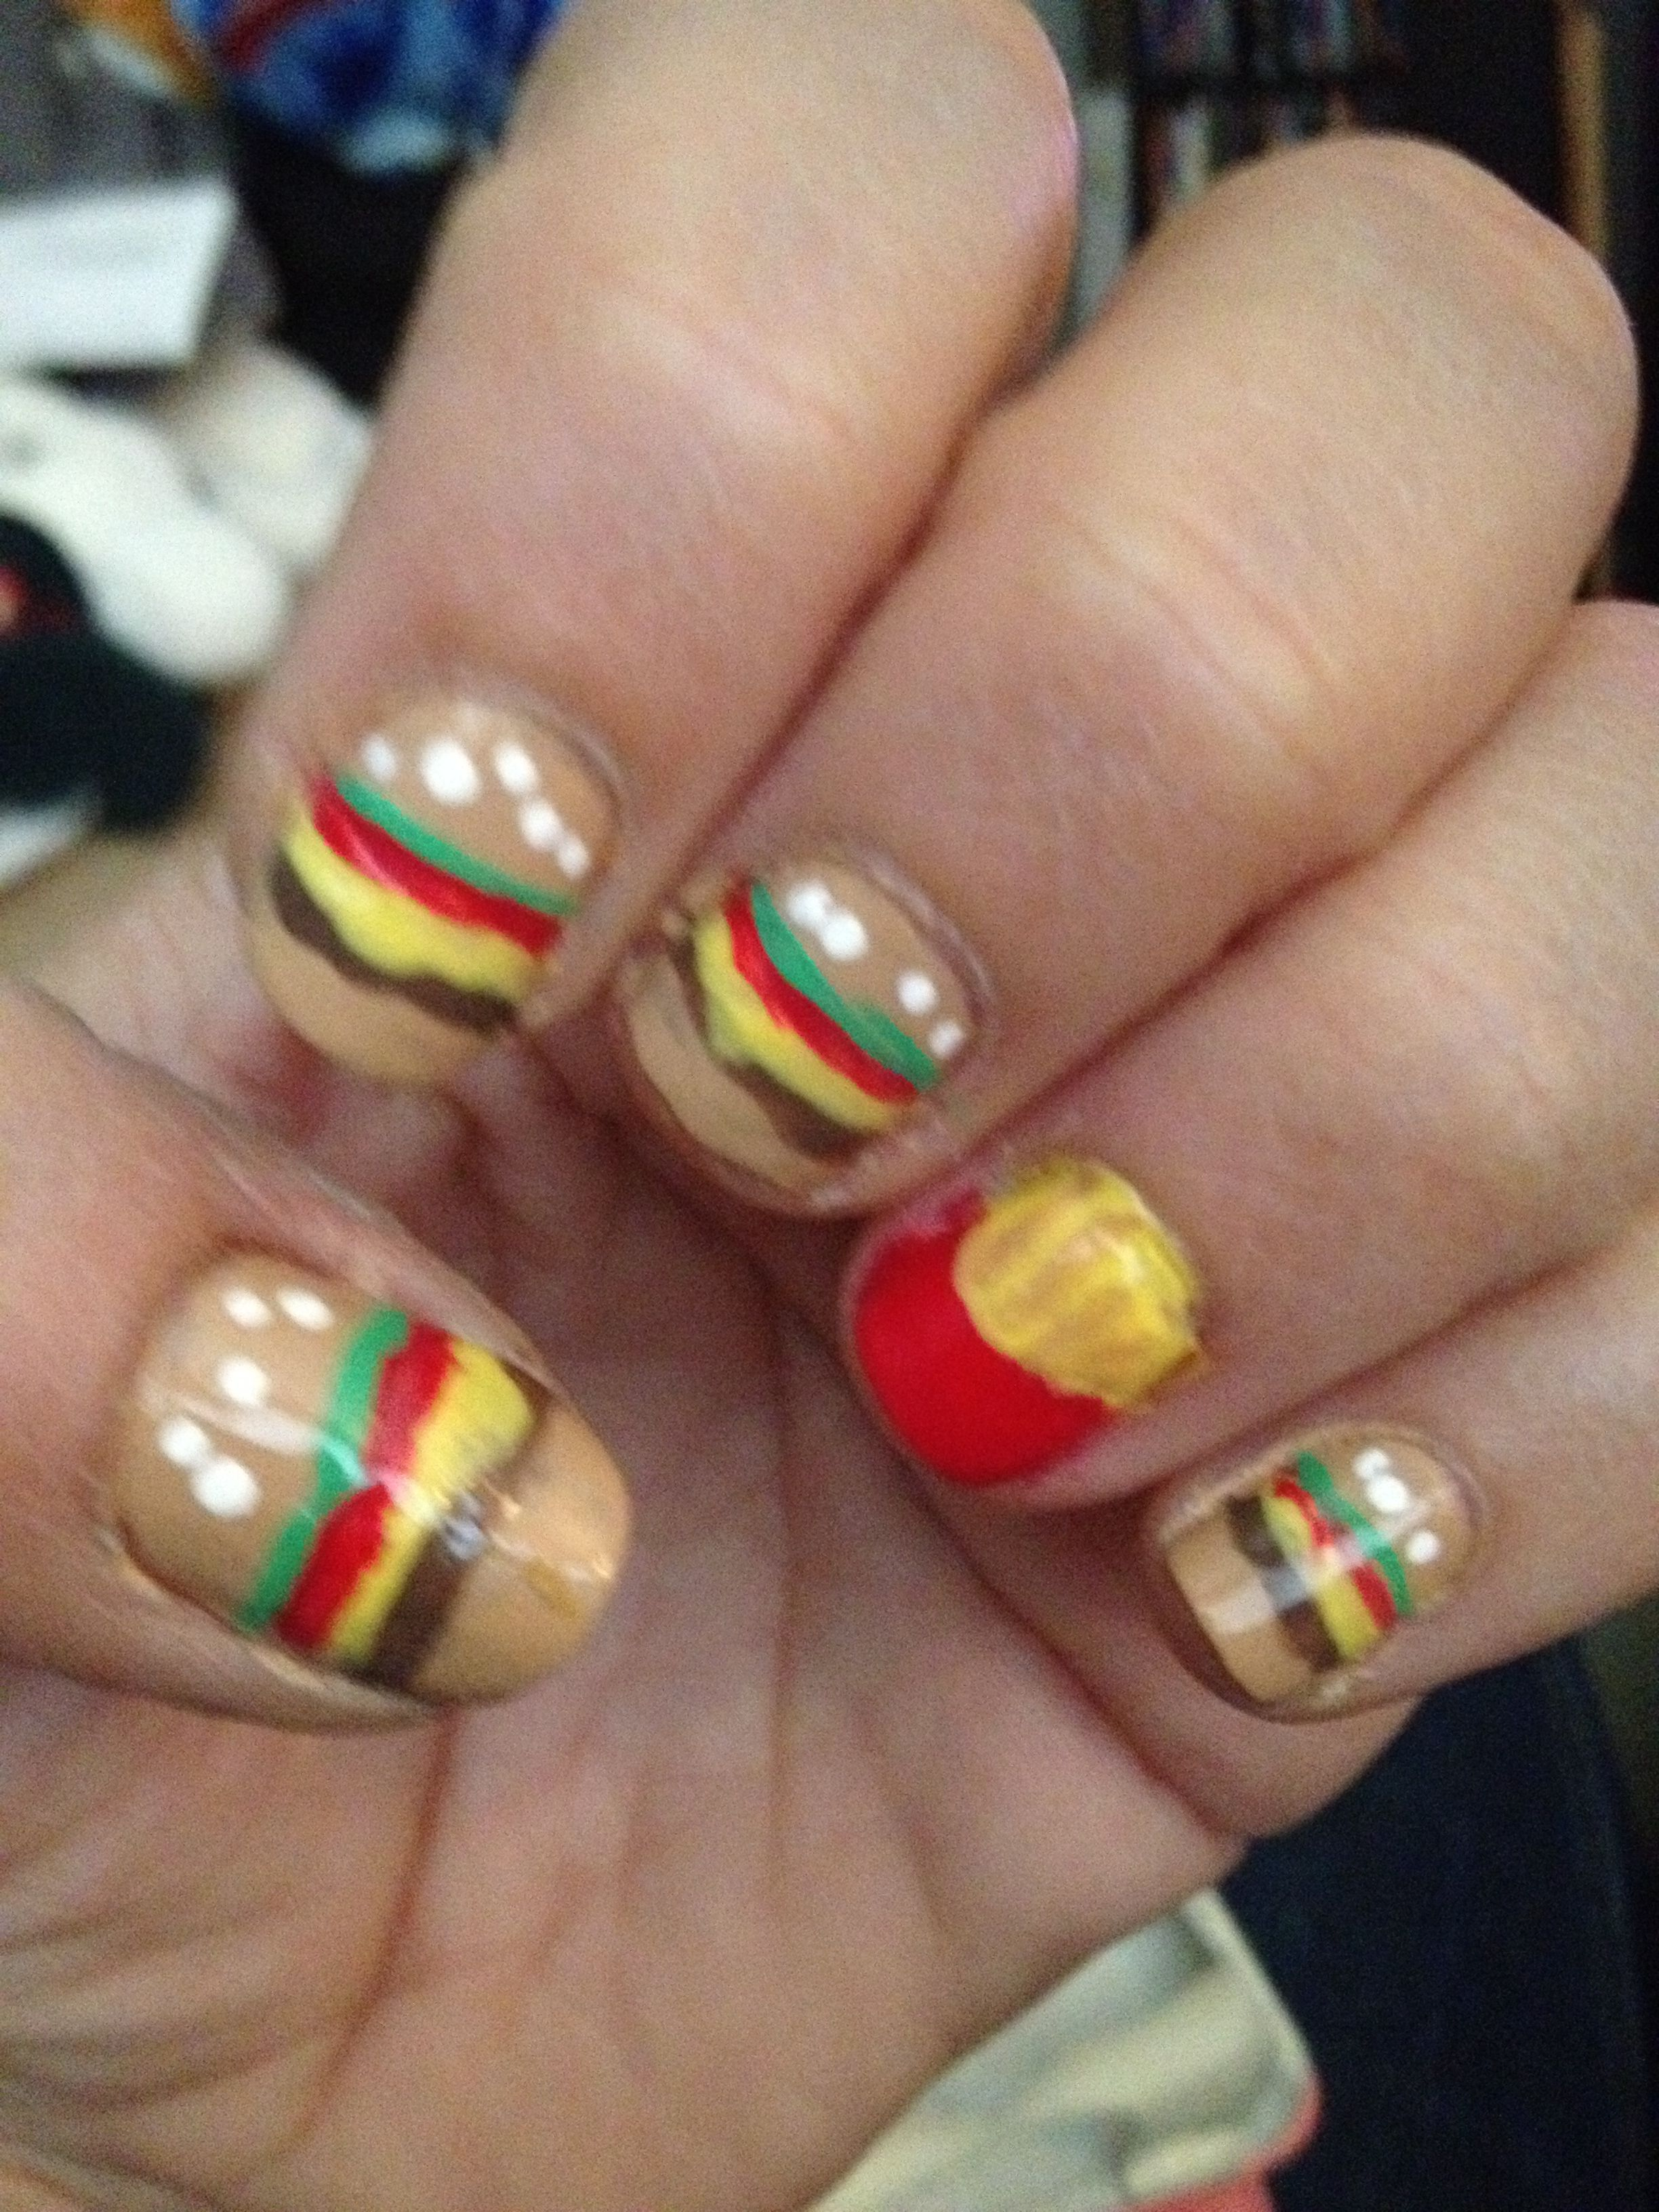 cheese burger nail art with french